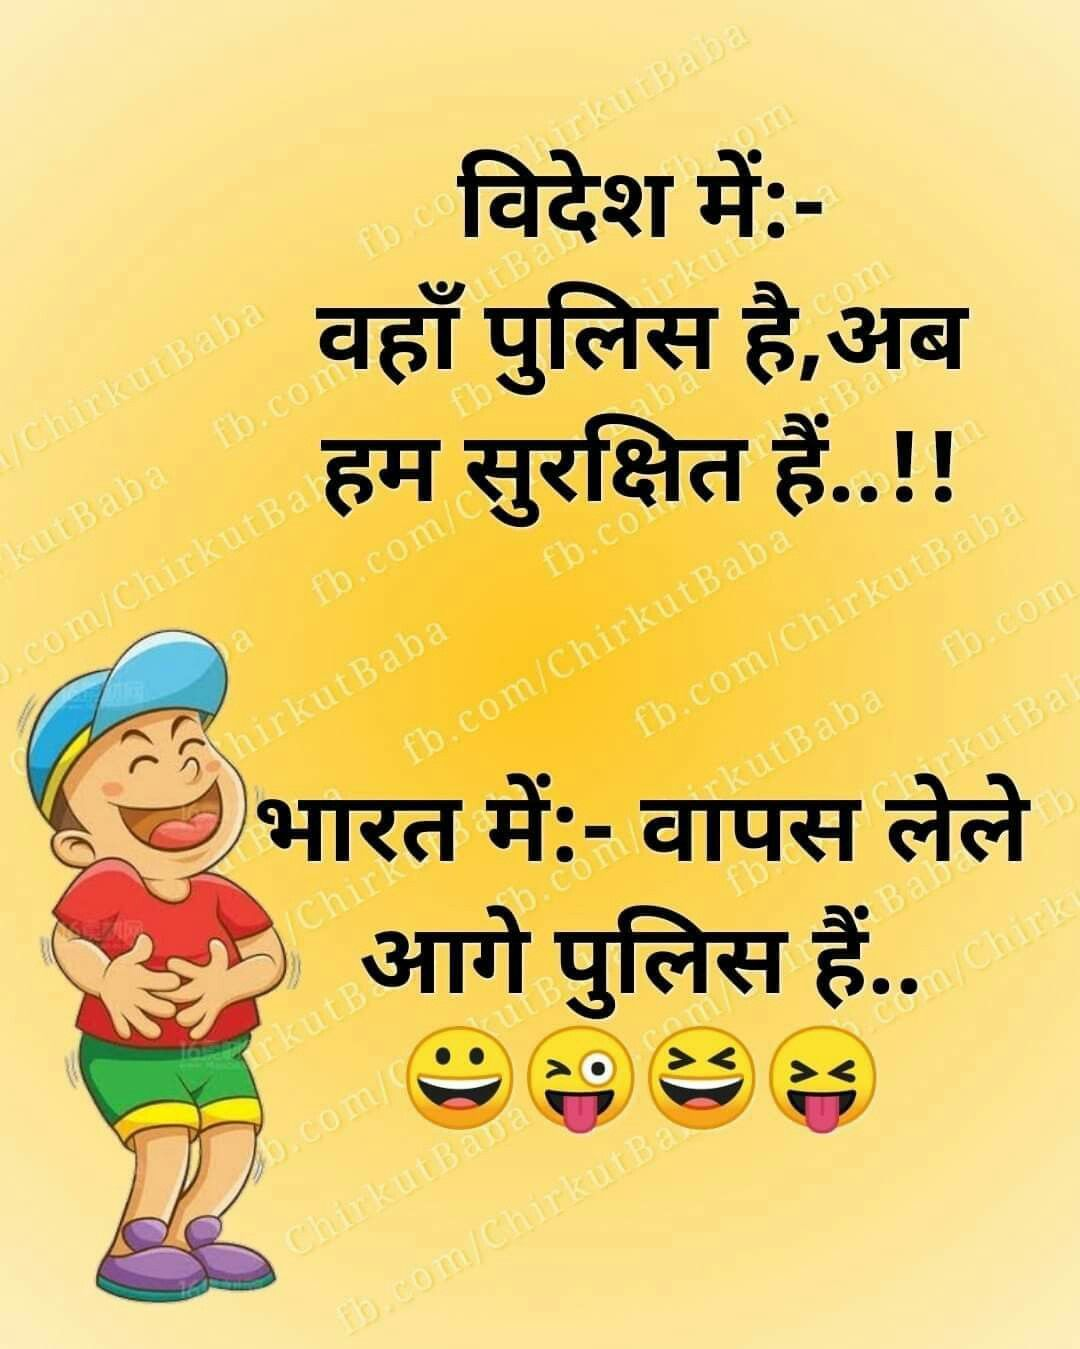 Indian_bhai Funny thoughts, Funny talking, Funny jokes